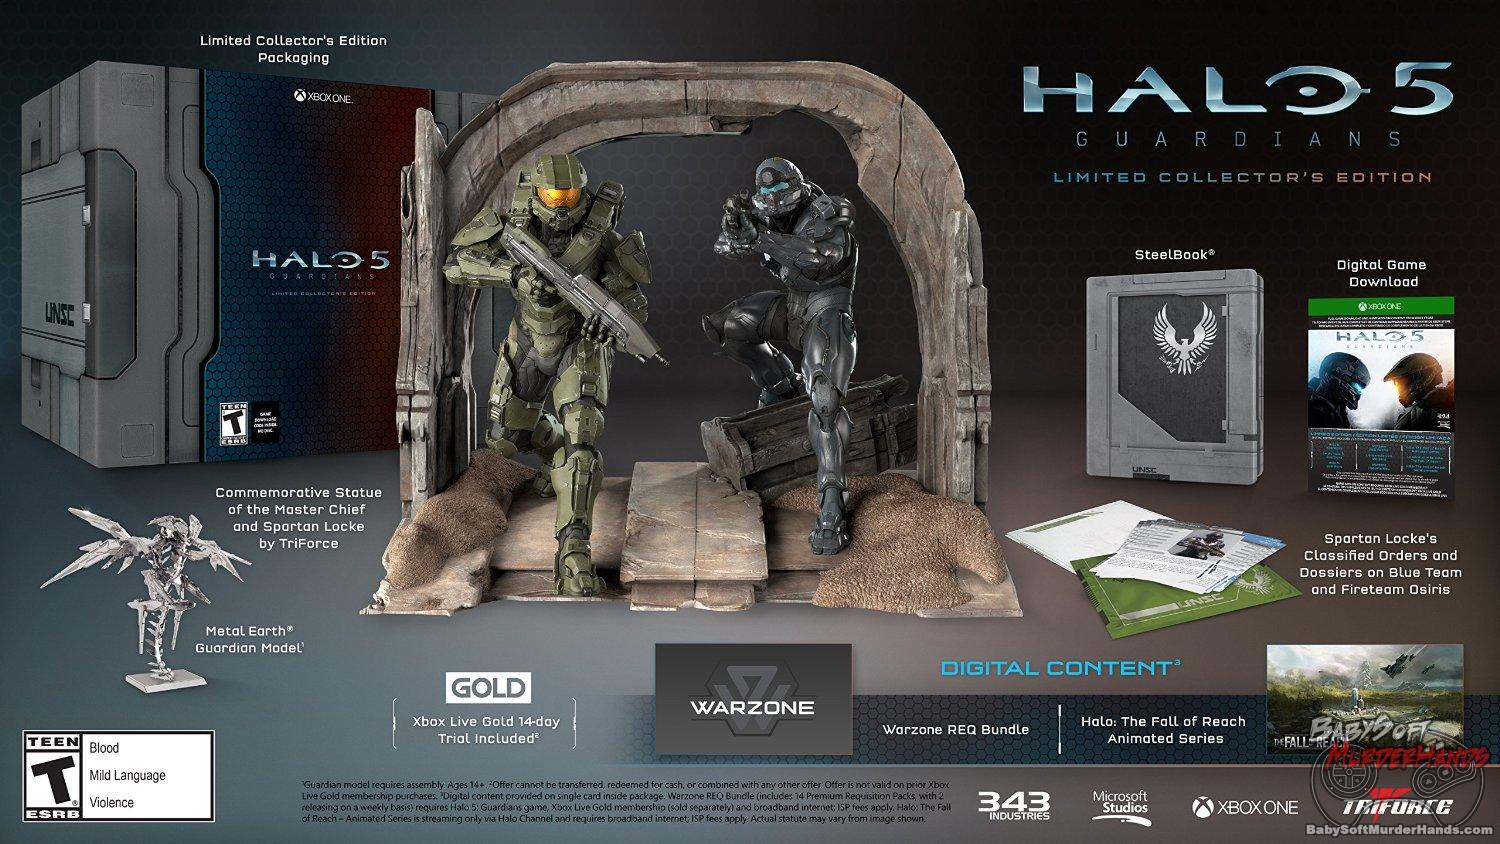 Halo 5: Guardians - Limited Collector's Edition - Xbox One